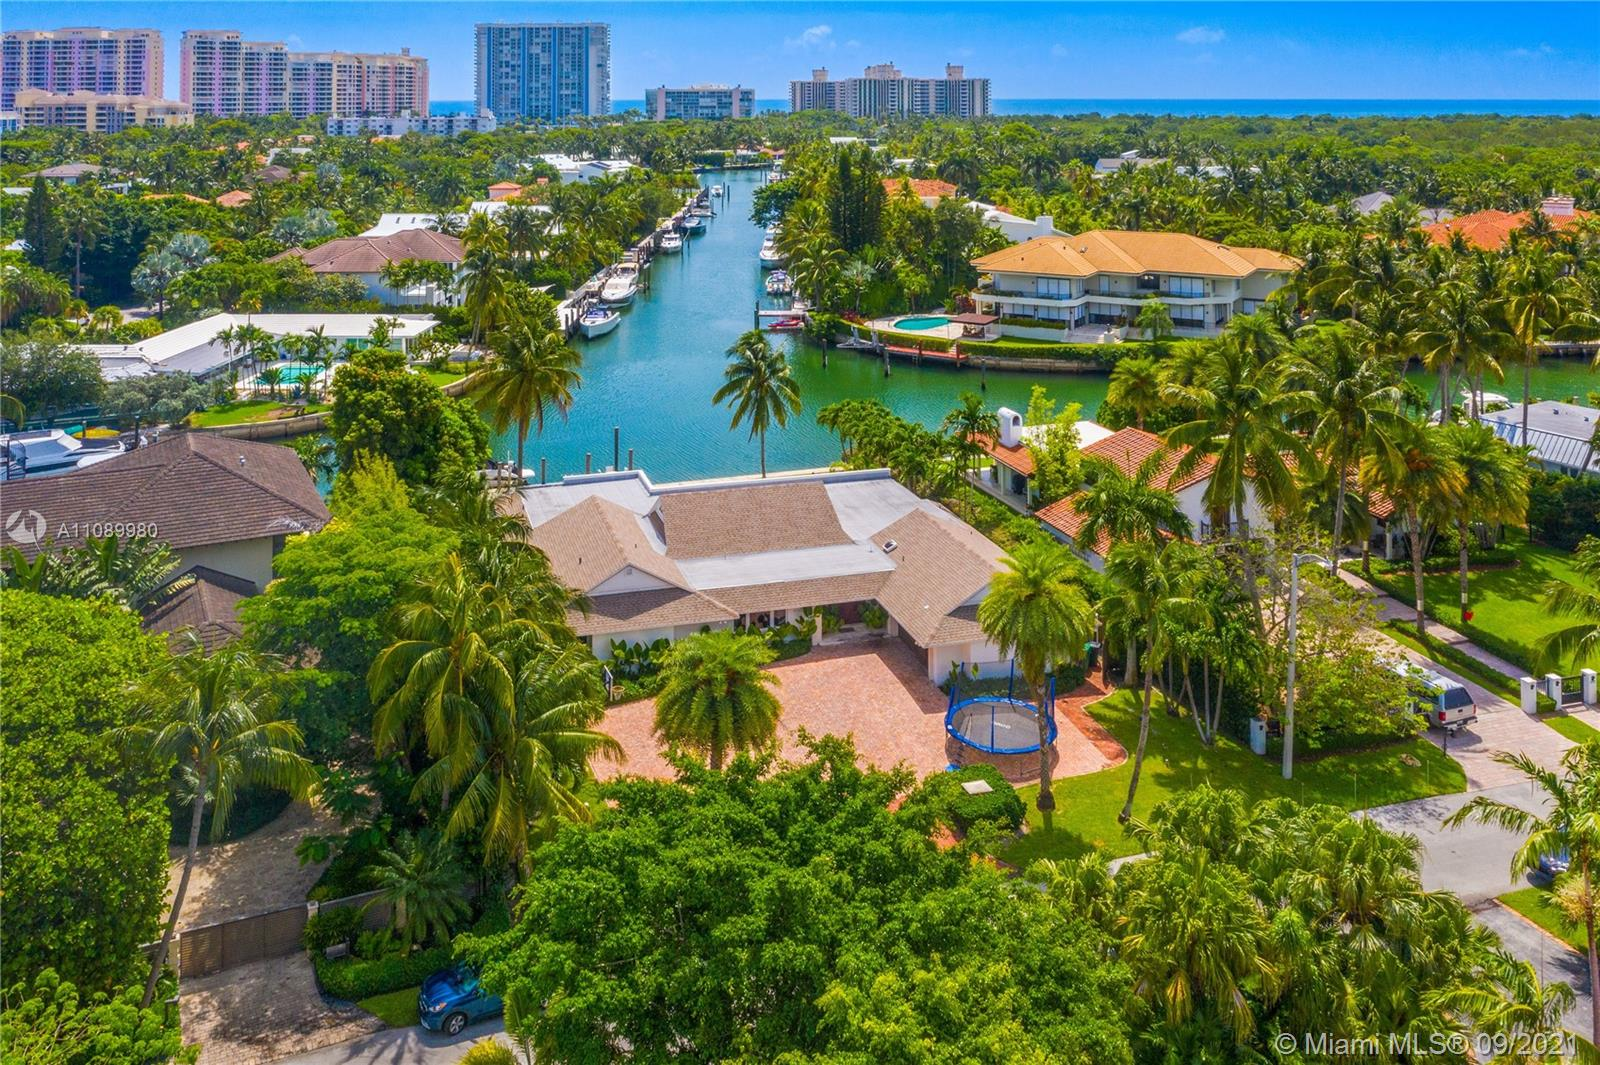 """Incredible location in one of Key Biscayne's most desired streets … """"Mariner Drive"""" which is private, quiet, secure and one of the highest streets on KB with 15,893 Sq Ft of land.  A true yachtsman's paradise with over 100 feet on the water and amazing endless views down the canal with easy access to the bay.  This one story residence is open, bright and has natural light throughout with high ceilings in the living area.  Offering 5 ample bedrooms, 4 bathrooms, 1 cabana bath, office, separate living and dining room, spacious family area, garage, dock, and an oversized gorgeous infinity pool with a great terrace for those who like to entertain.  Rare opportunity to own this magnificent property which is all about location. Tenant occupied until February 2022. (see broker remarks)"""